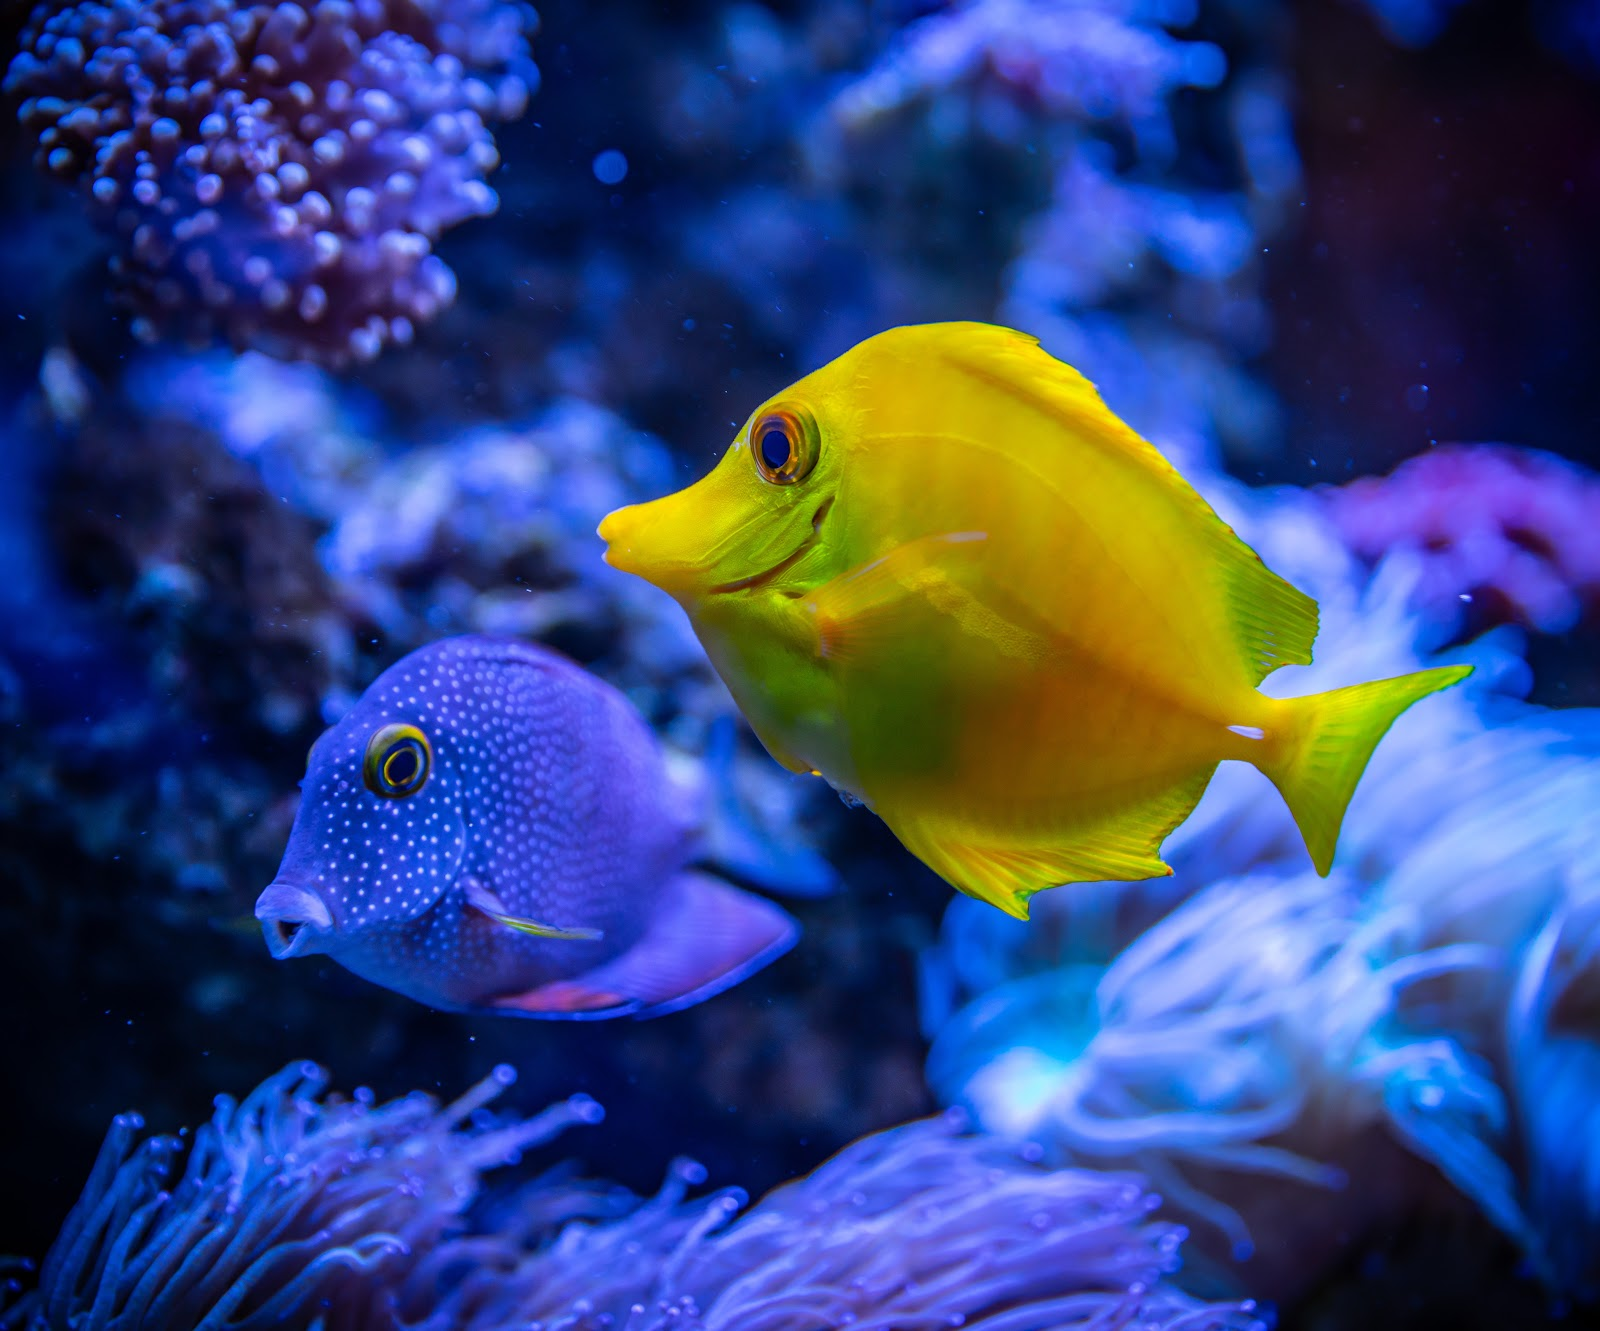 yellow-and-blue-fish-in-water-images